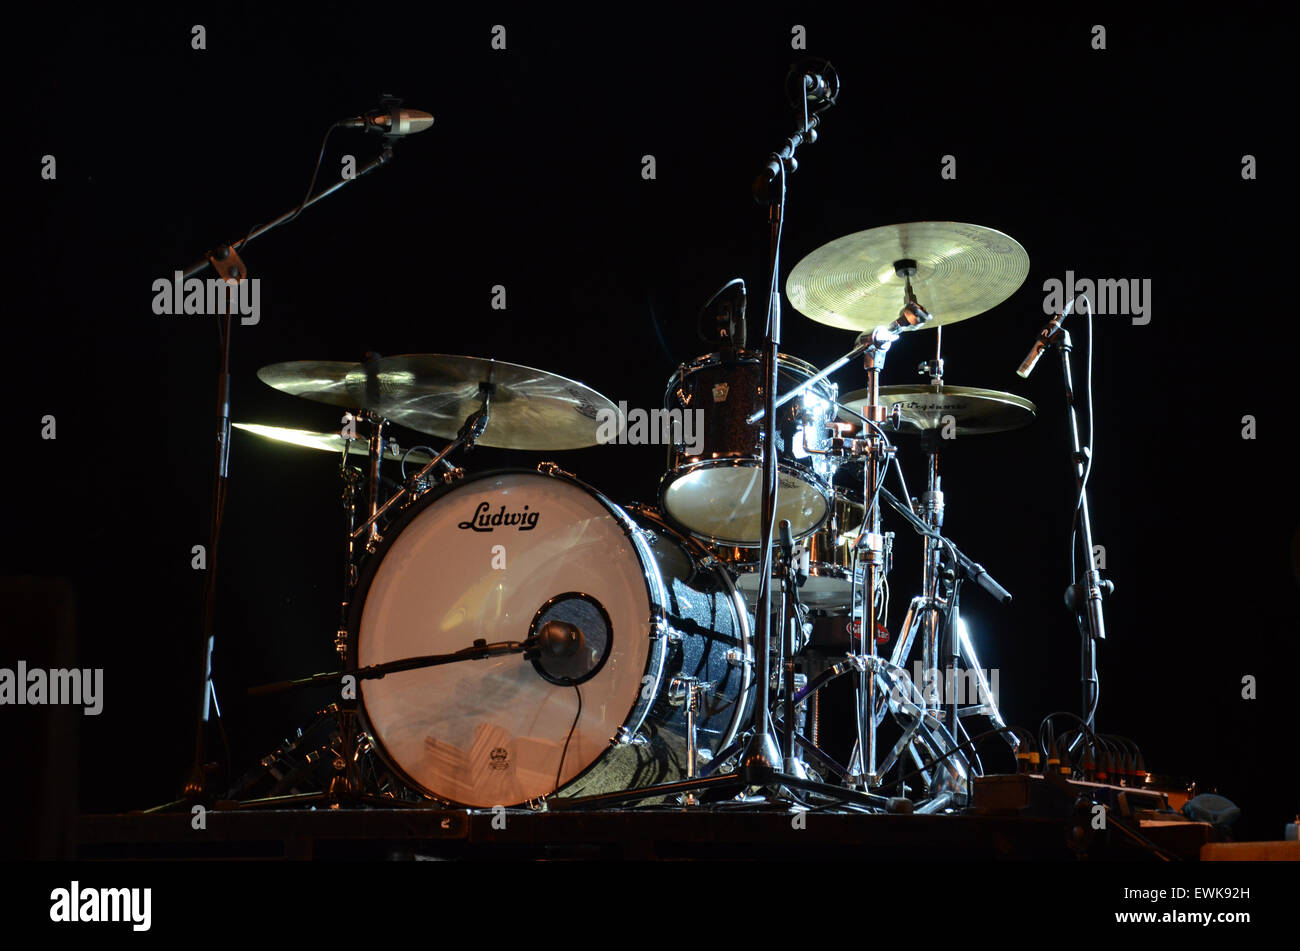 Mark Barrett S Ludwig Drum Kit On Stage For The Hoax Concert Stock